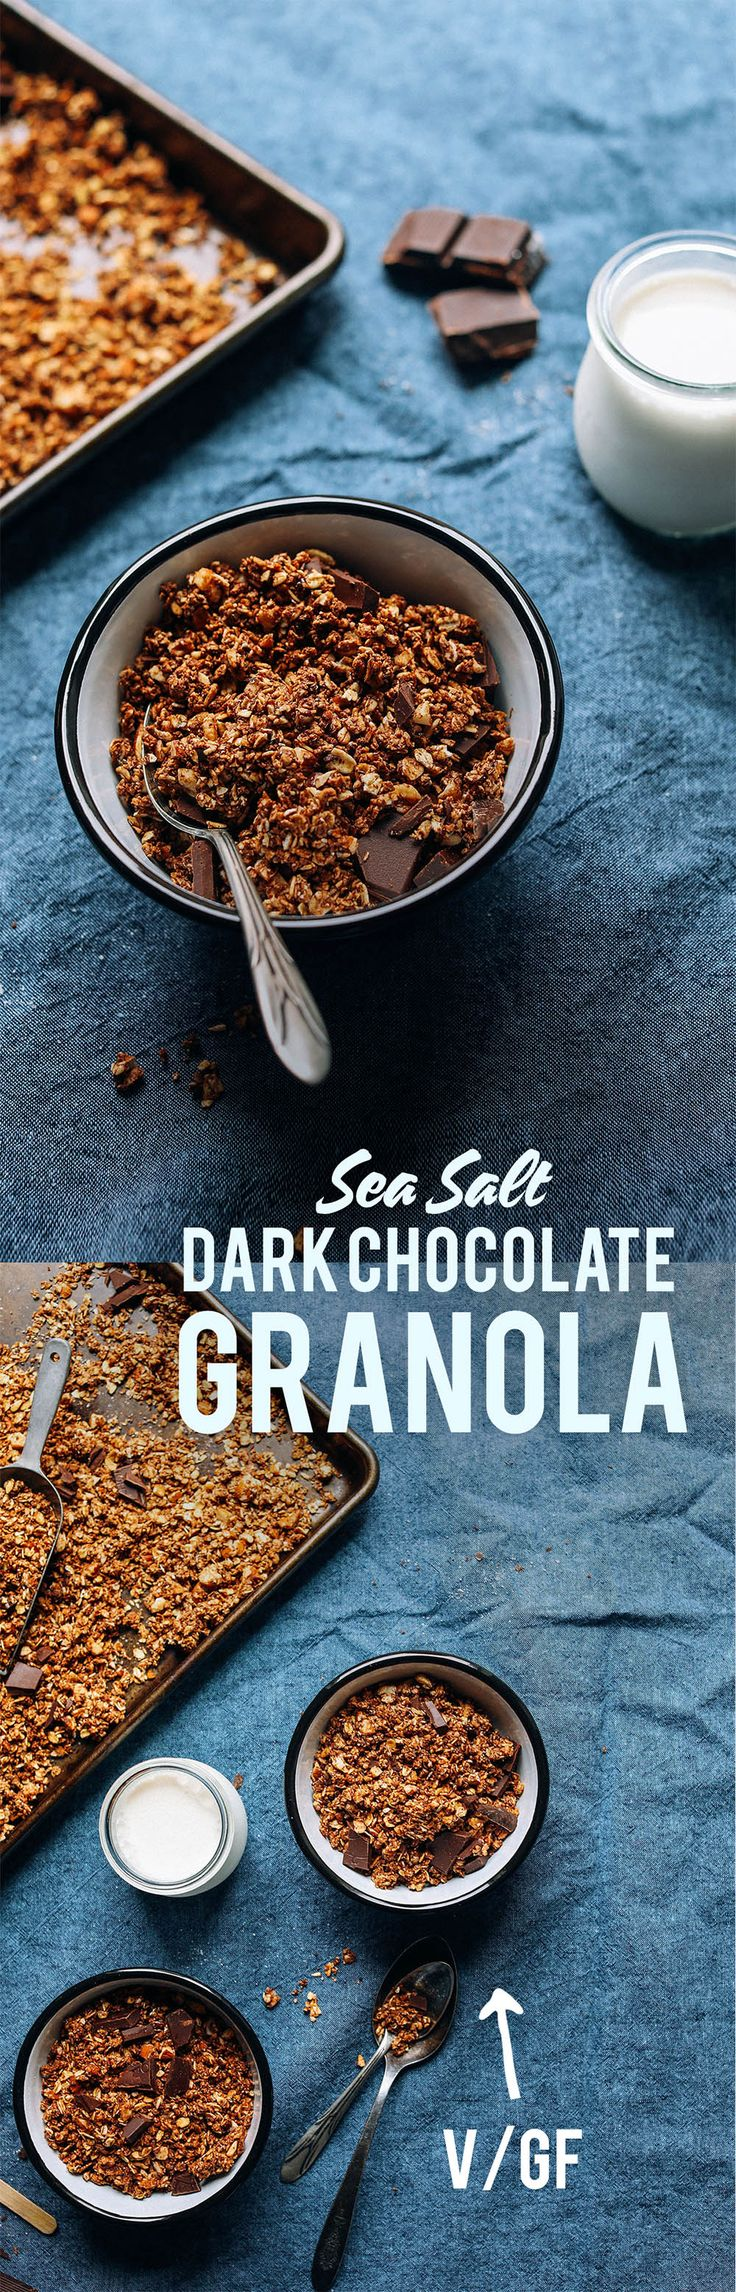 Dark Chocolate Sea Salt GRANOLA! 9 ingredients, 30 minutes, naturally sweetened! yum!